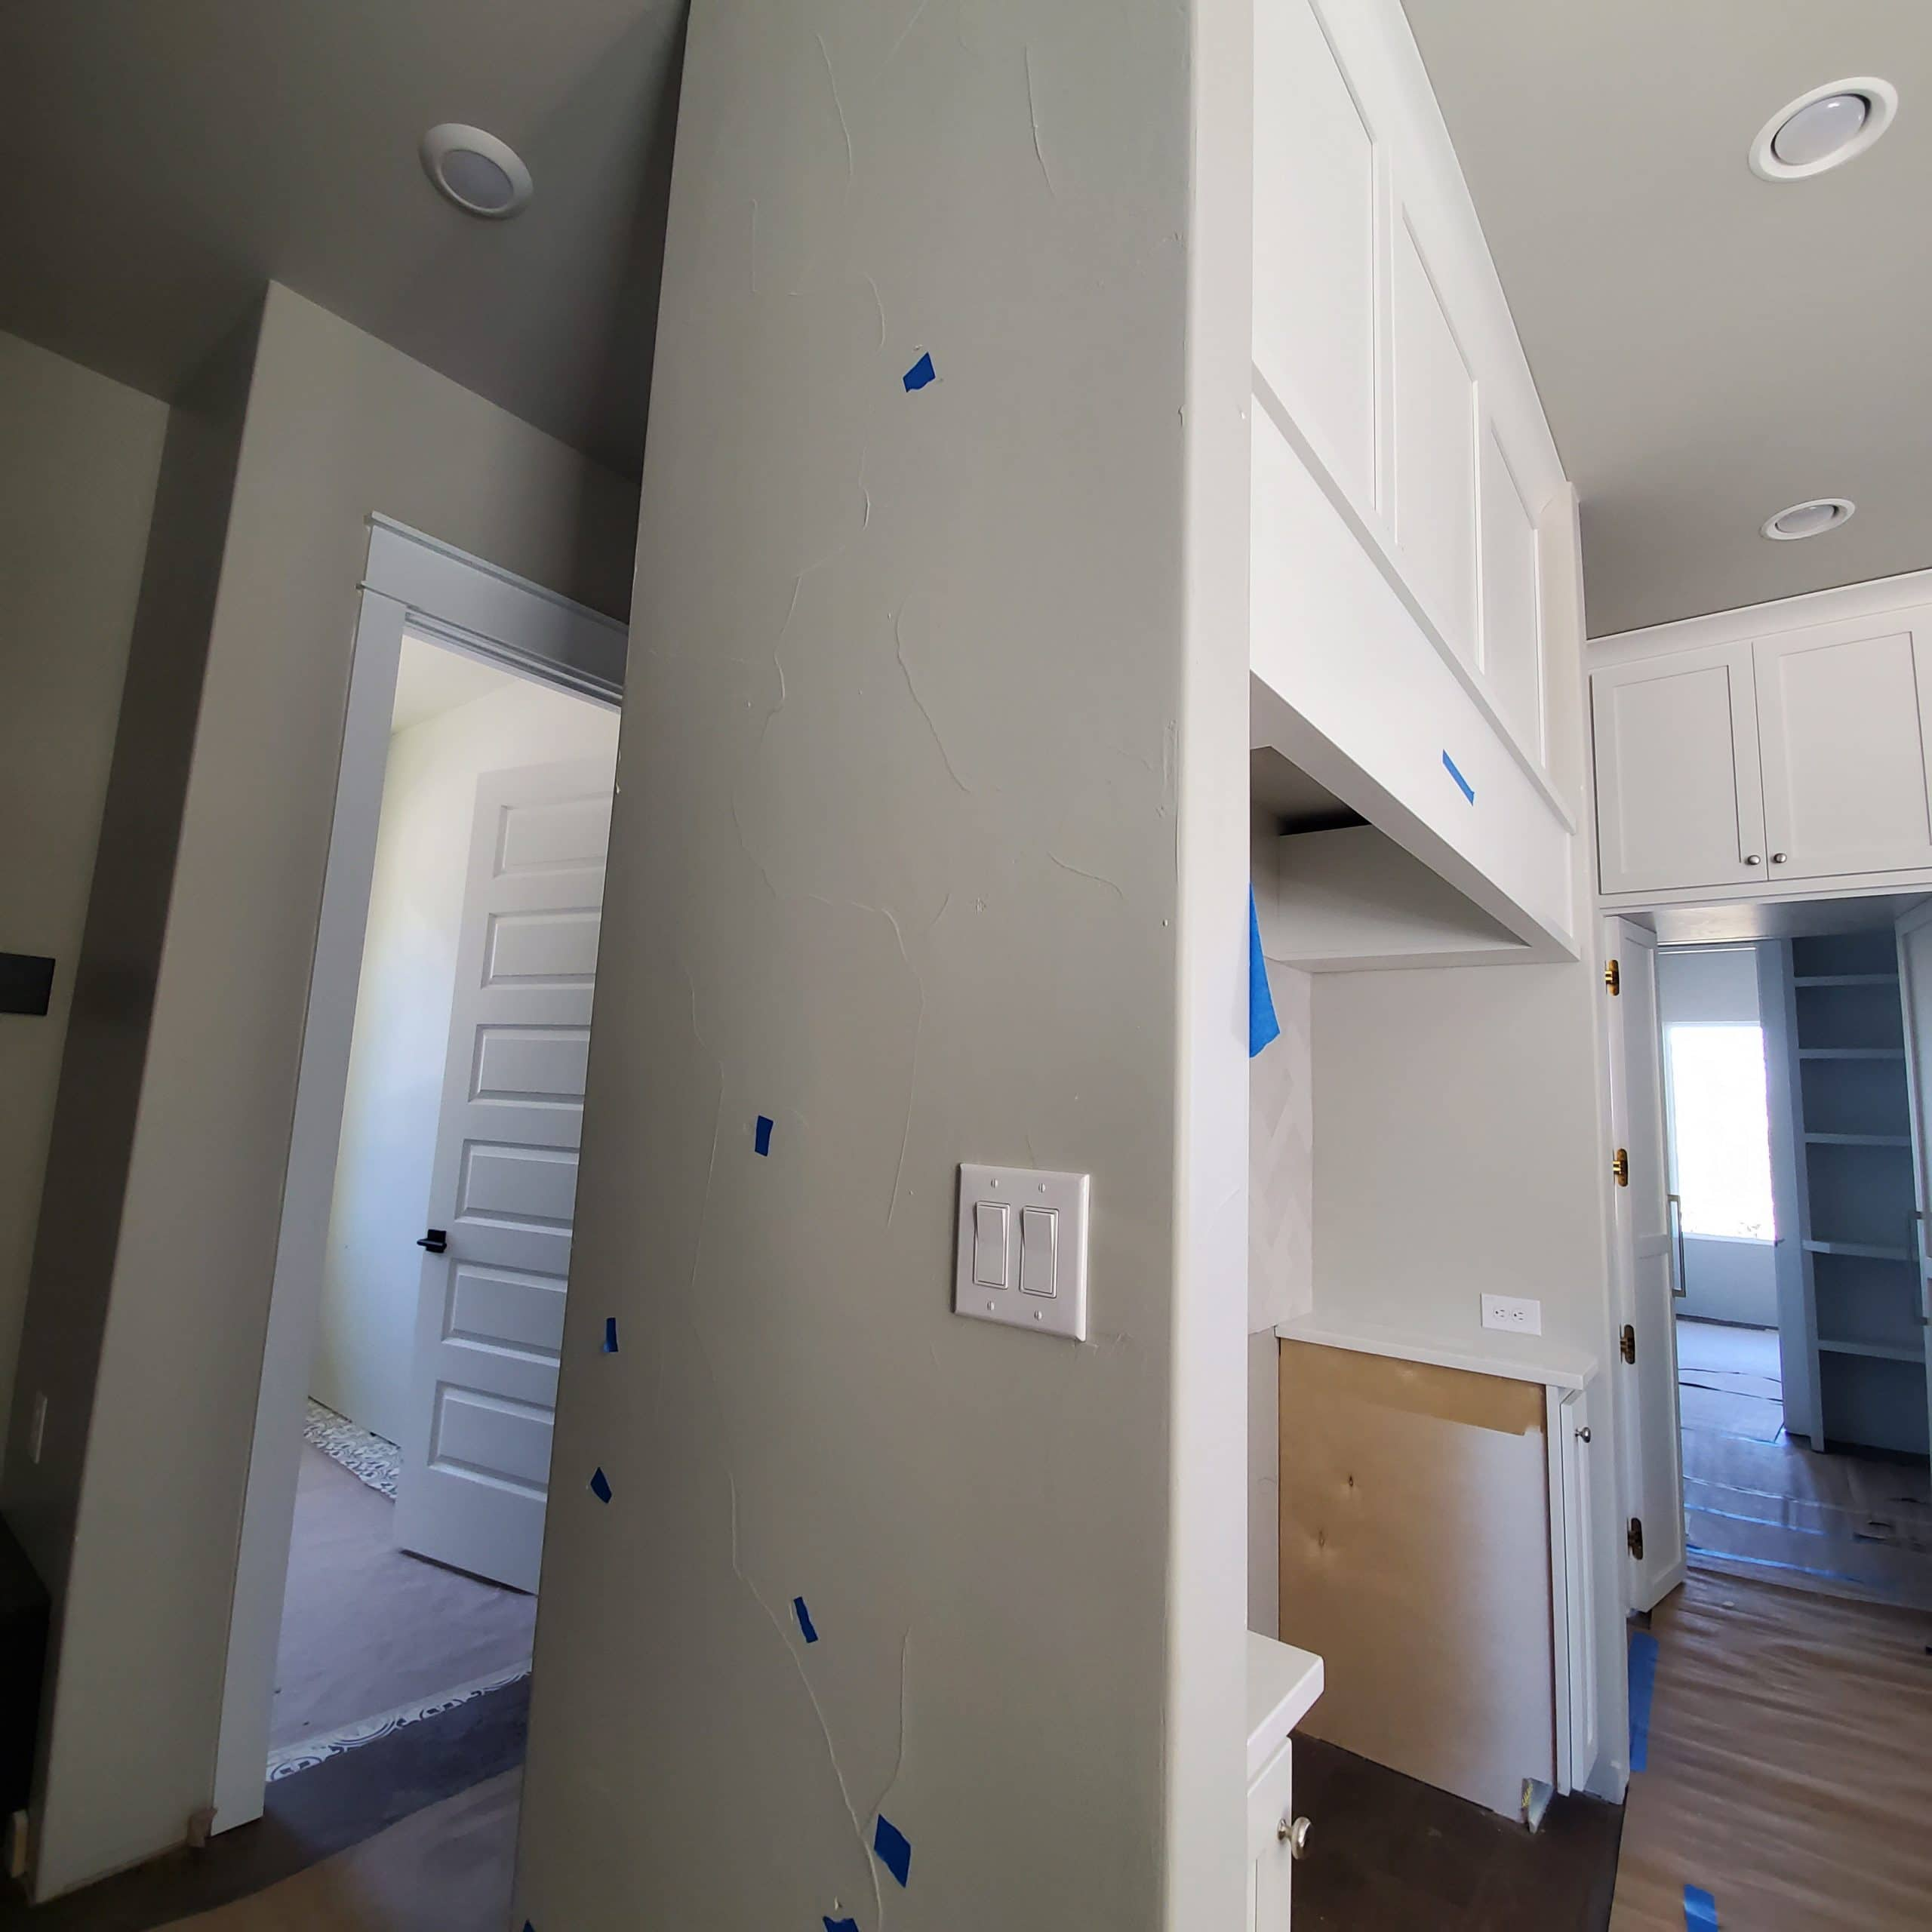 Punch lists and closing post shows grey wall in kitchen with blue painter's tape on different spot.